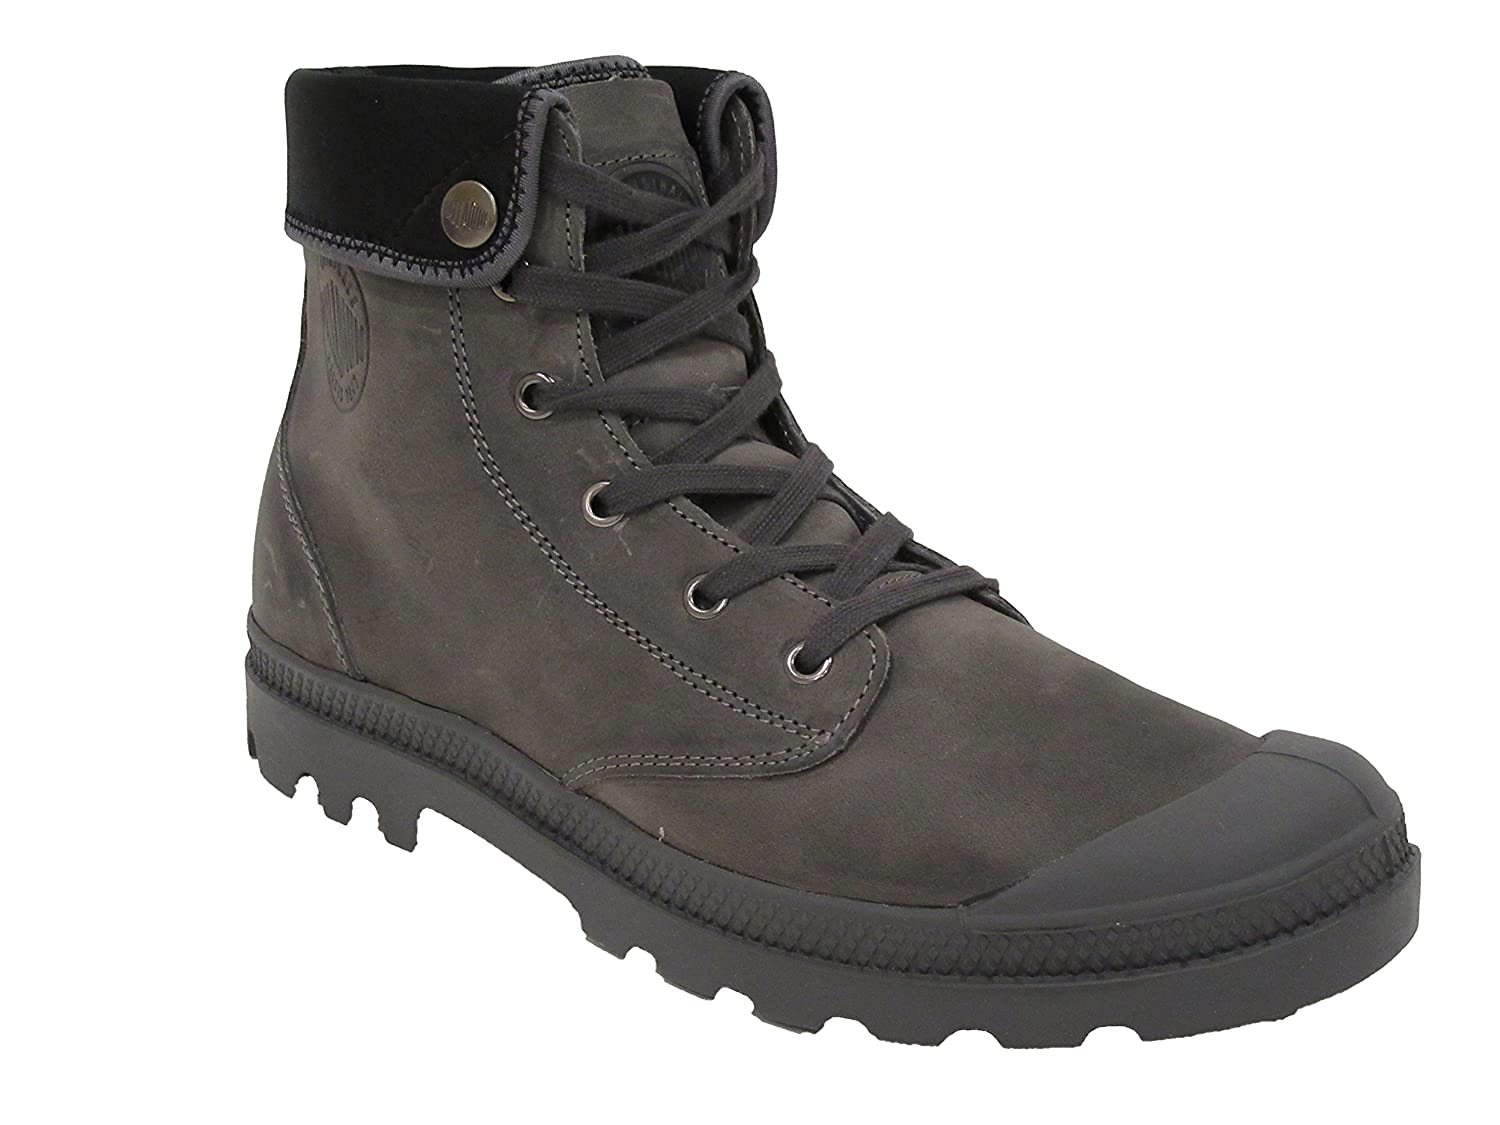 Palladium Men's Hi Sock Neo H Boot